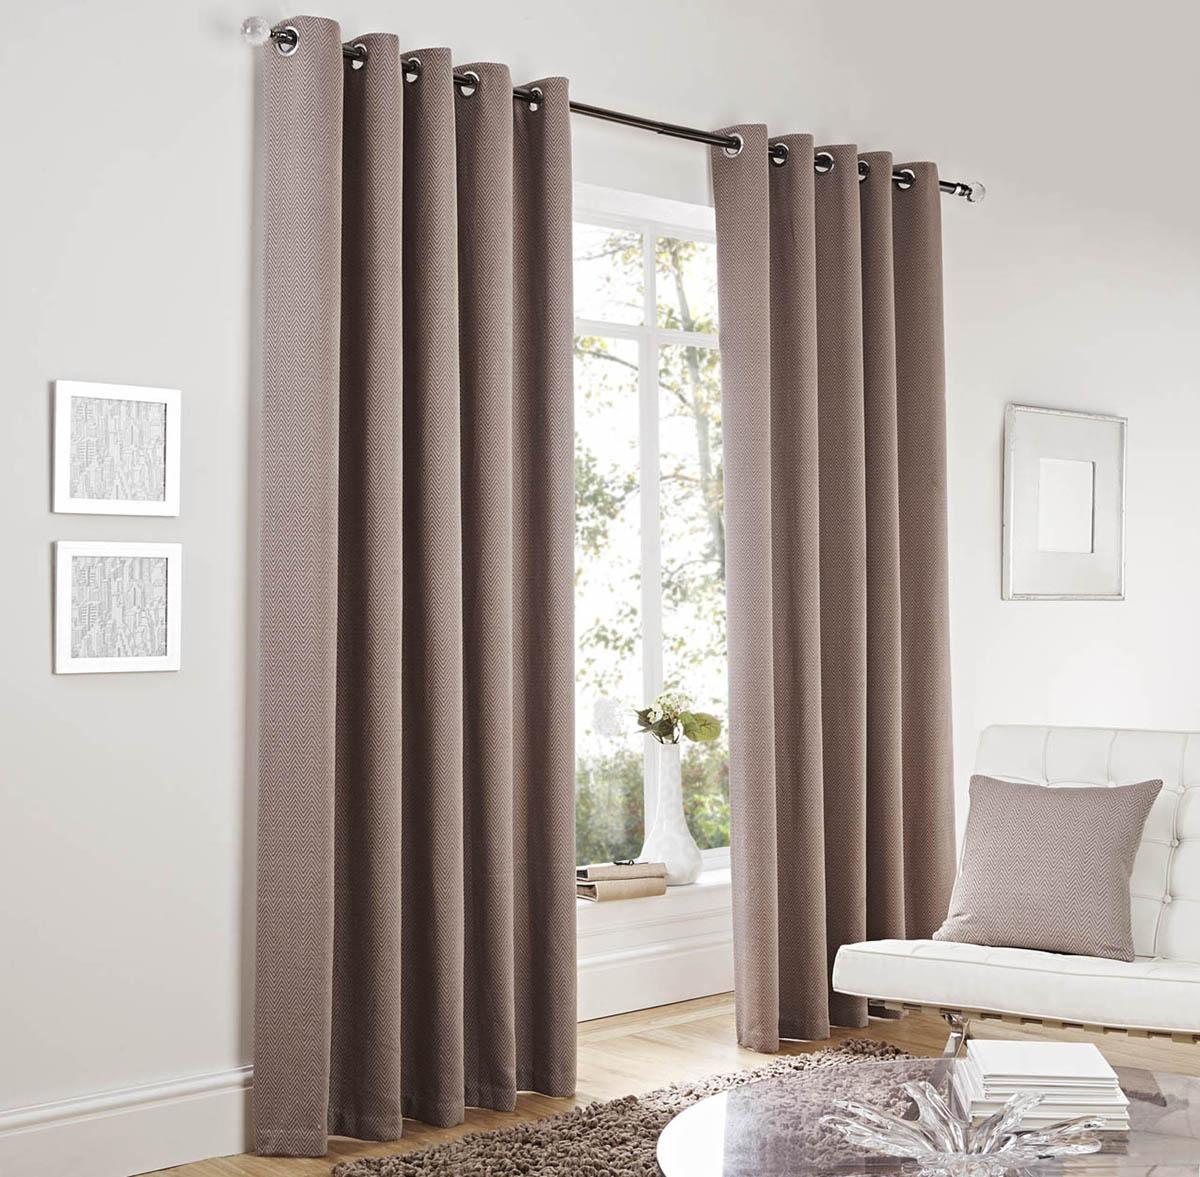 Lincoln Ready Made Eyelet Curtains Taupe Luxury Ringtop Curtains